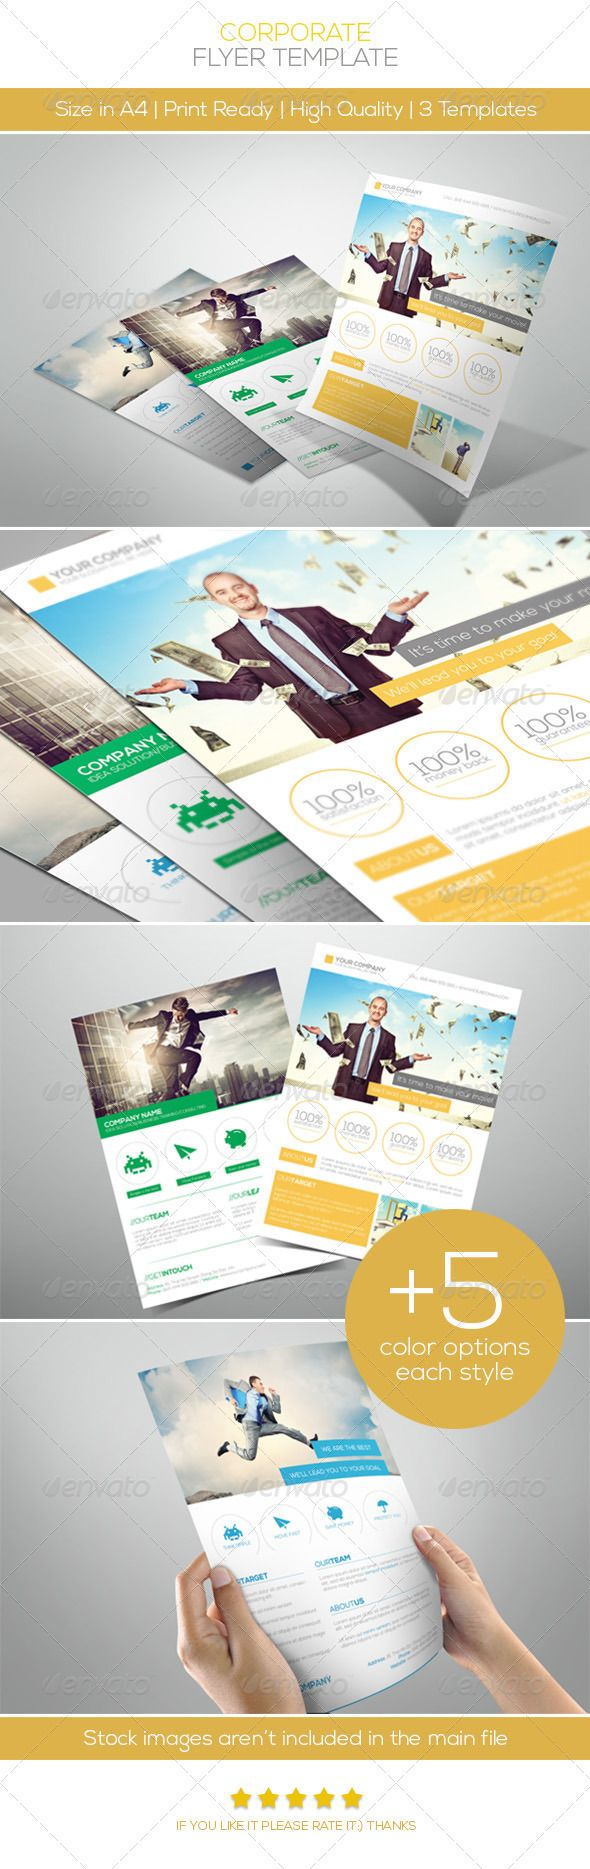 Invoice For Payment Template Word The  Best Images About Print Templates On Pinterest  Fonts  Basic Invoice Template Excel Excel with Cash Received Receipt Format Excel Premium Corporate Flyers Vol Car Rental Invoice Pdf